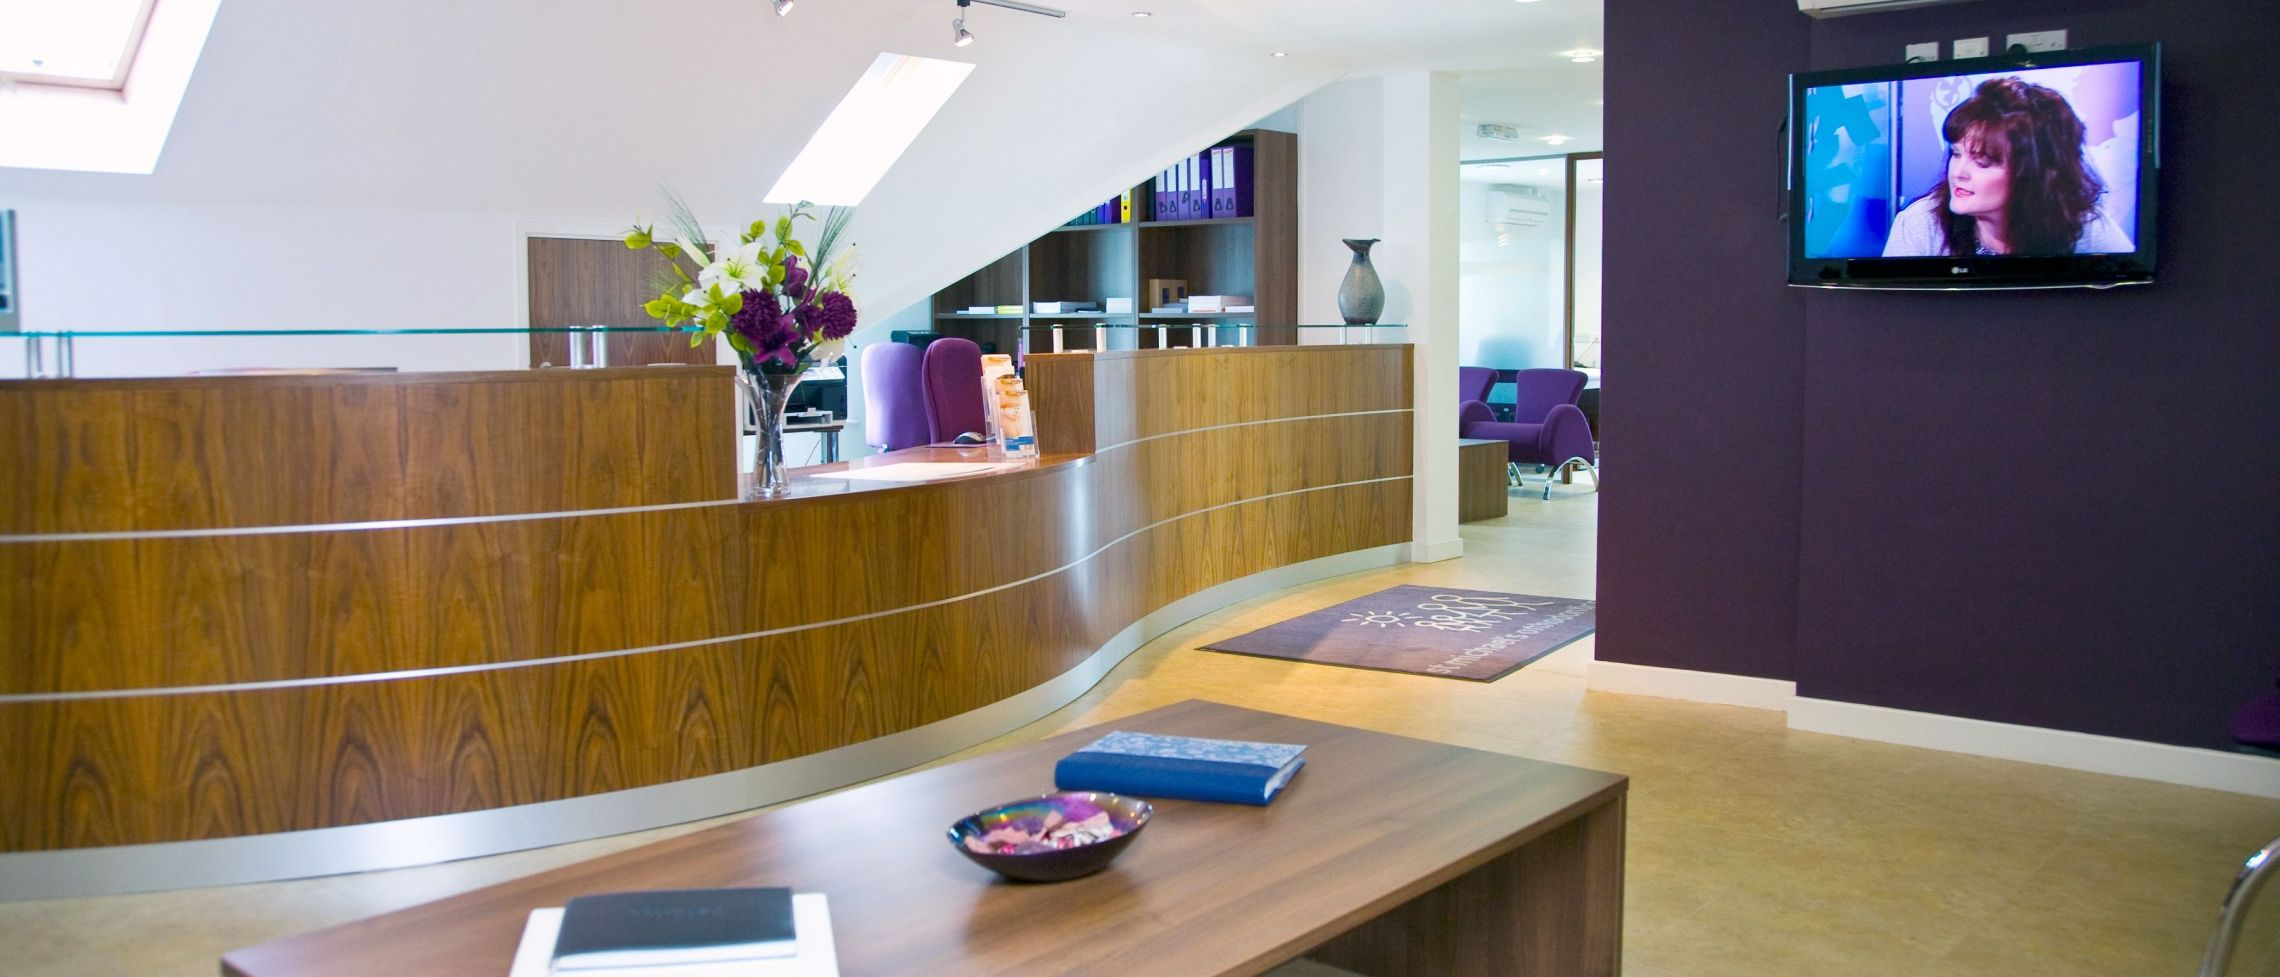 St Michael's Orthodontics Ltd